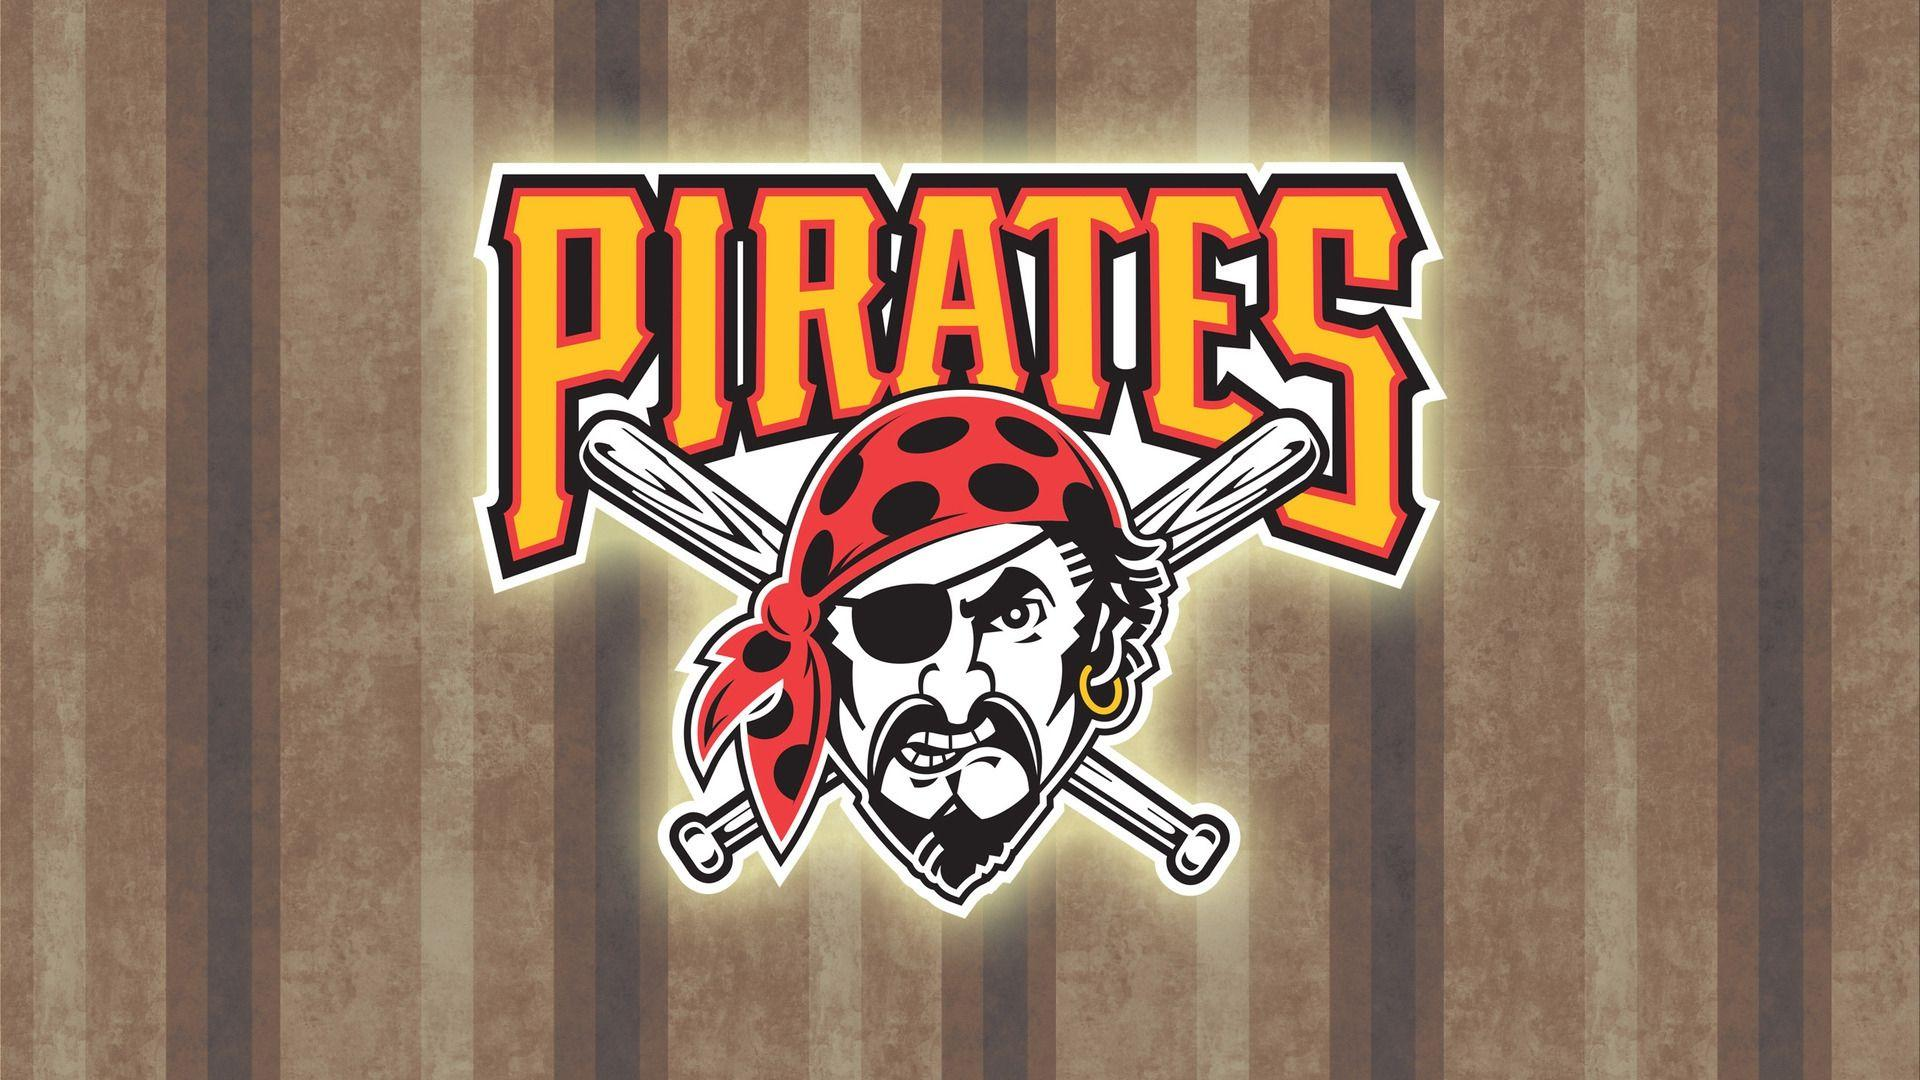 Pittsburgh Pirates Logo Wallpapers HD - Page 3 of 3 - wallpaper.wiki